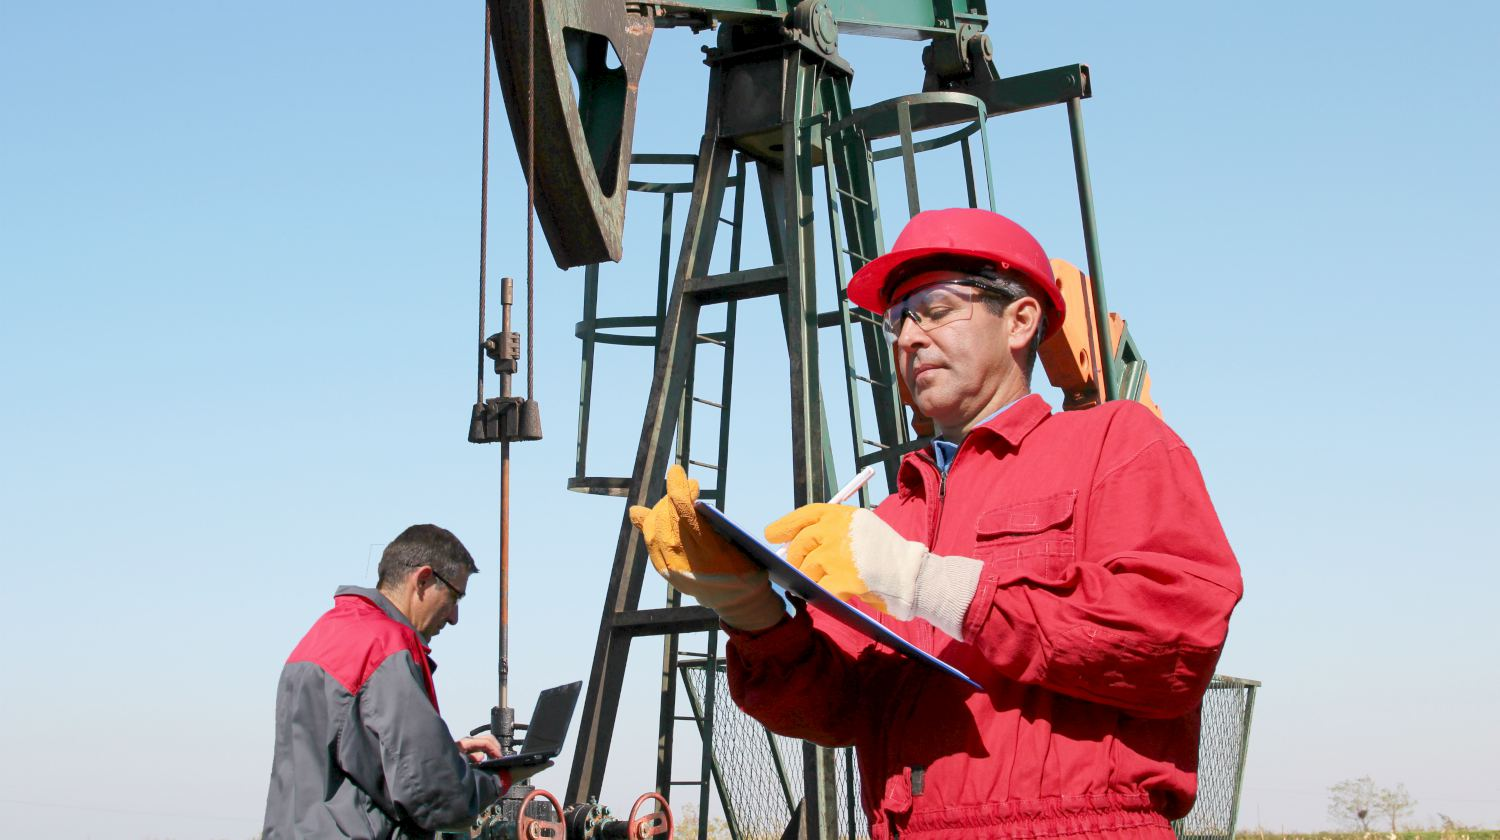 Featured | petroleum oil engineers | Top Oil Stocks To Consider Inside Your IRA | best oil stocks